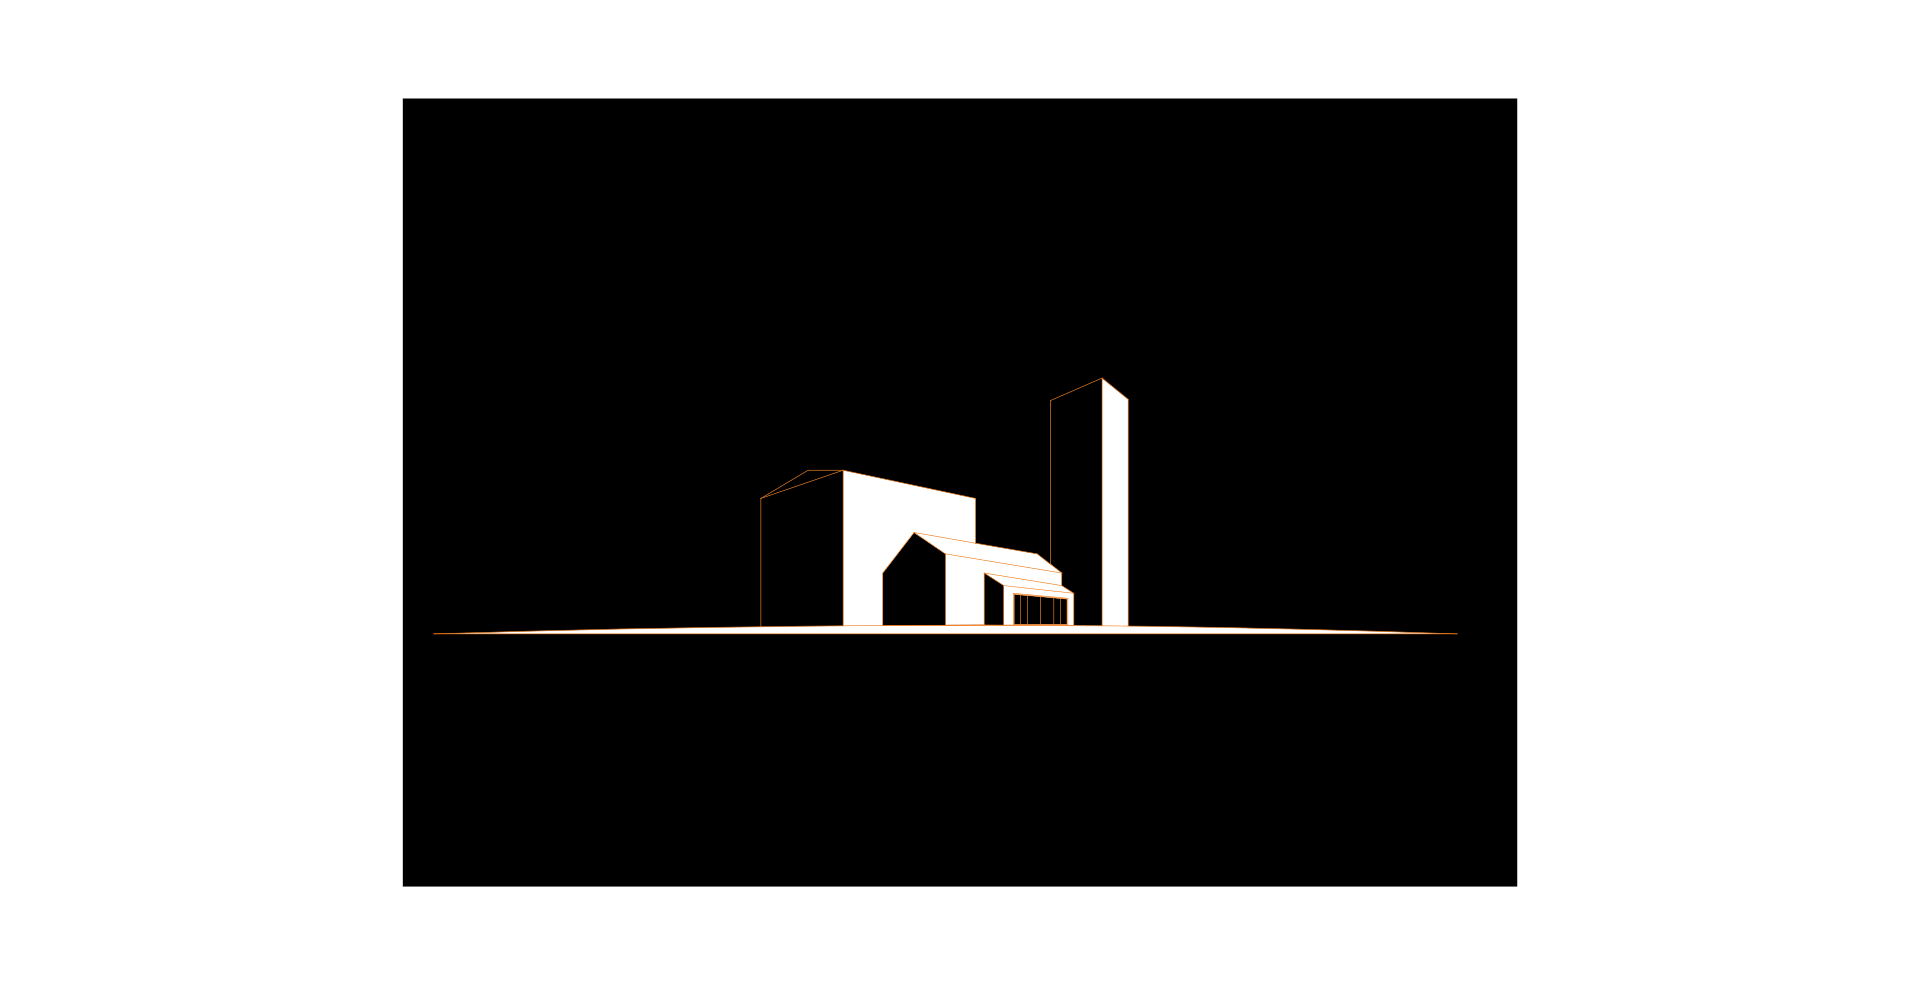 logo 1 building only.png